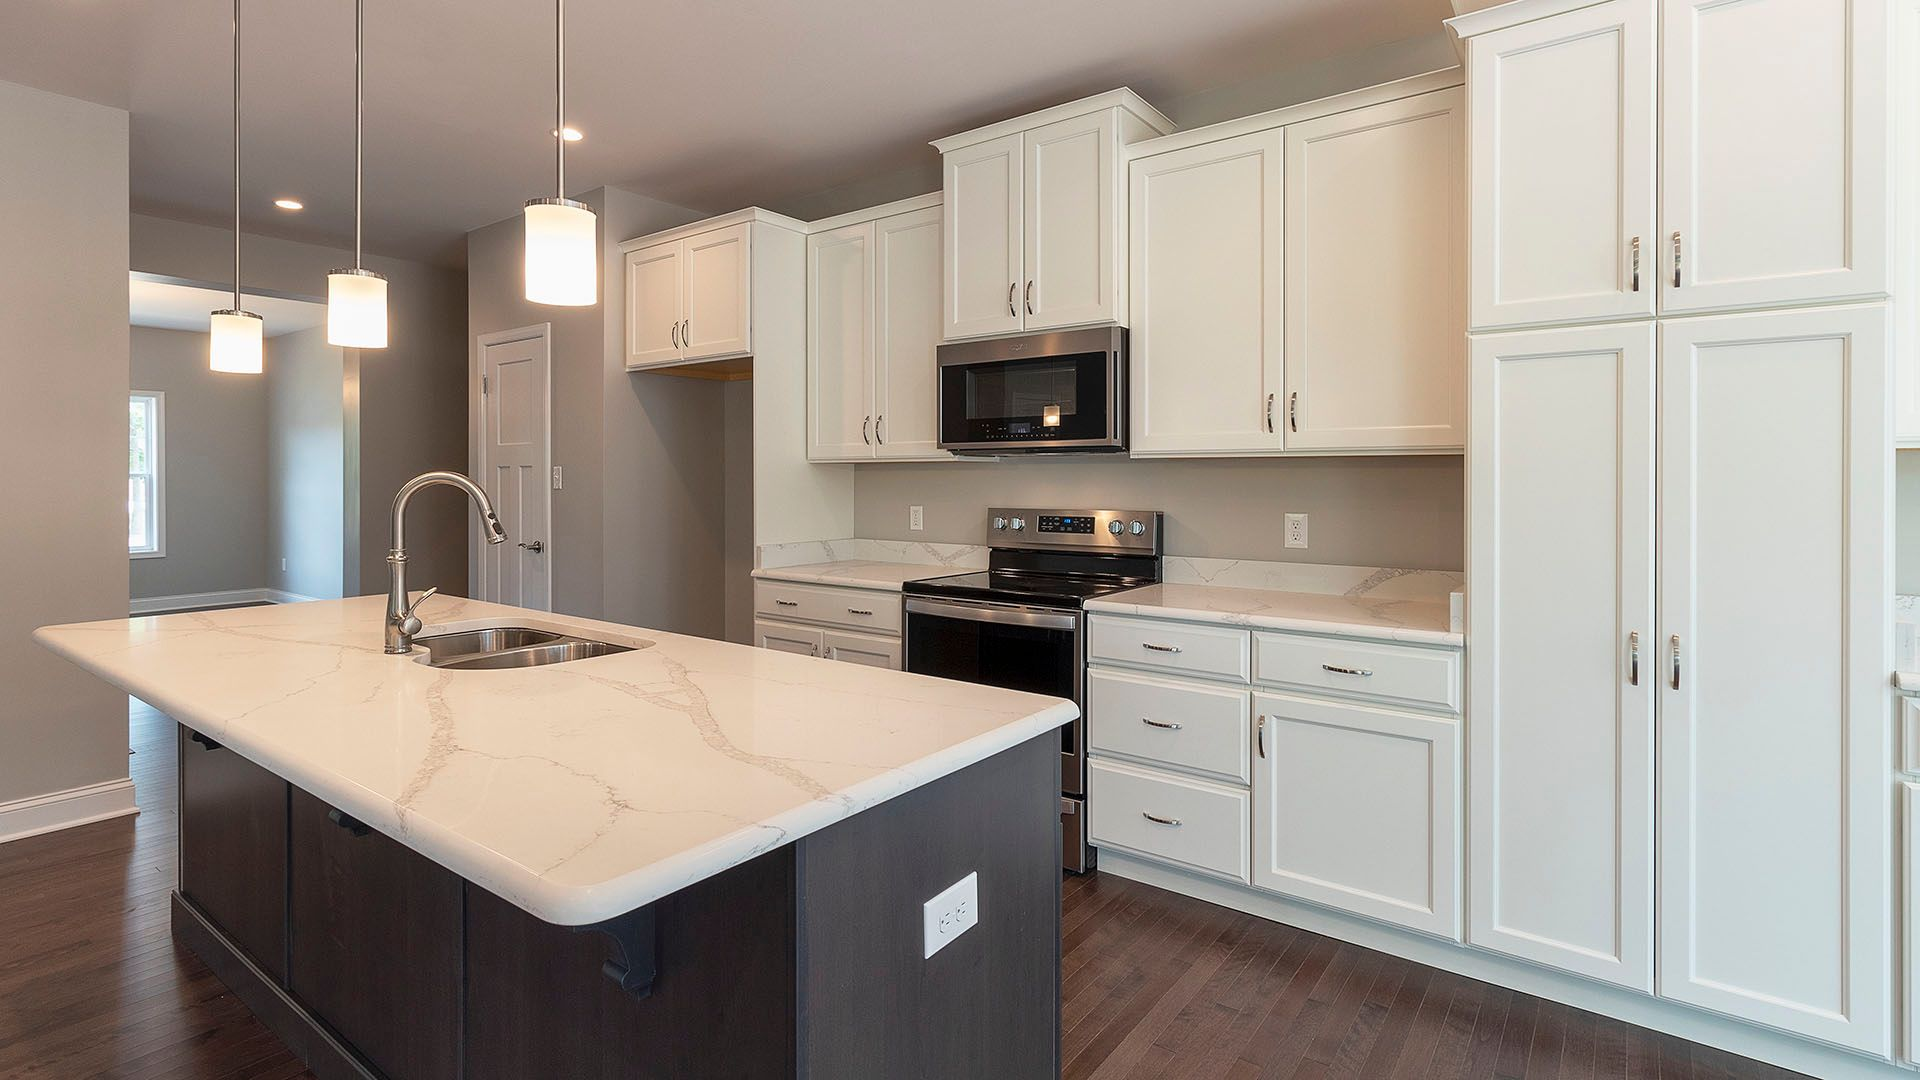 Kitchen featured in the Avalon By S & A Homes in State College, PA